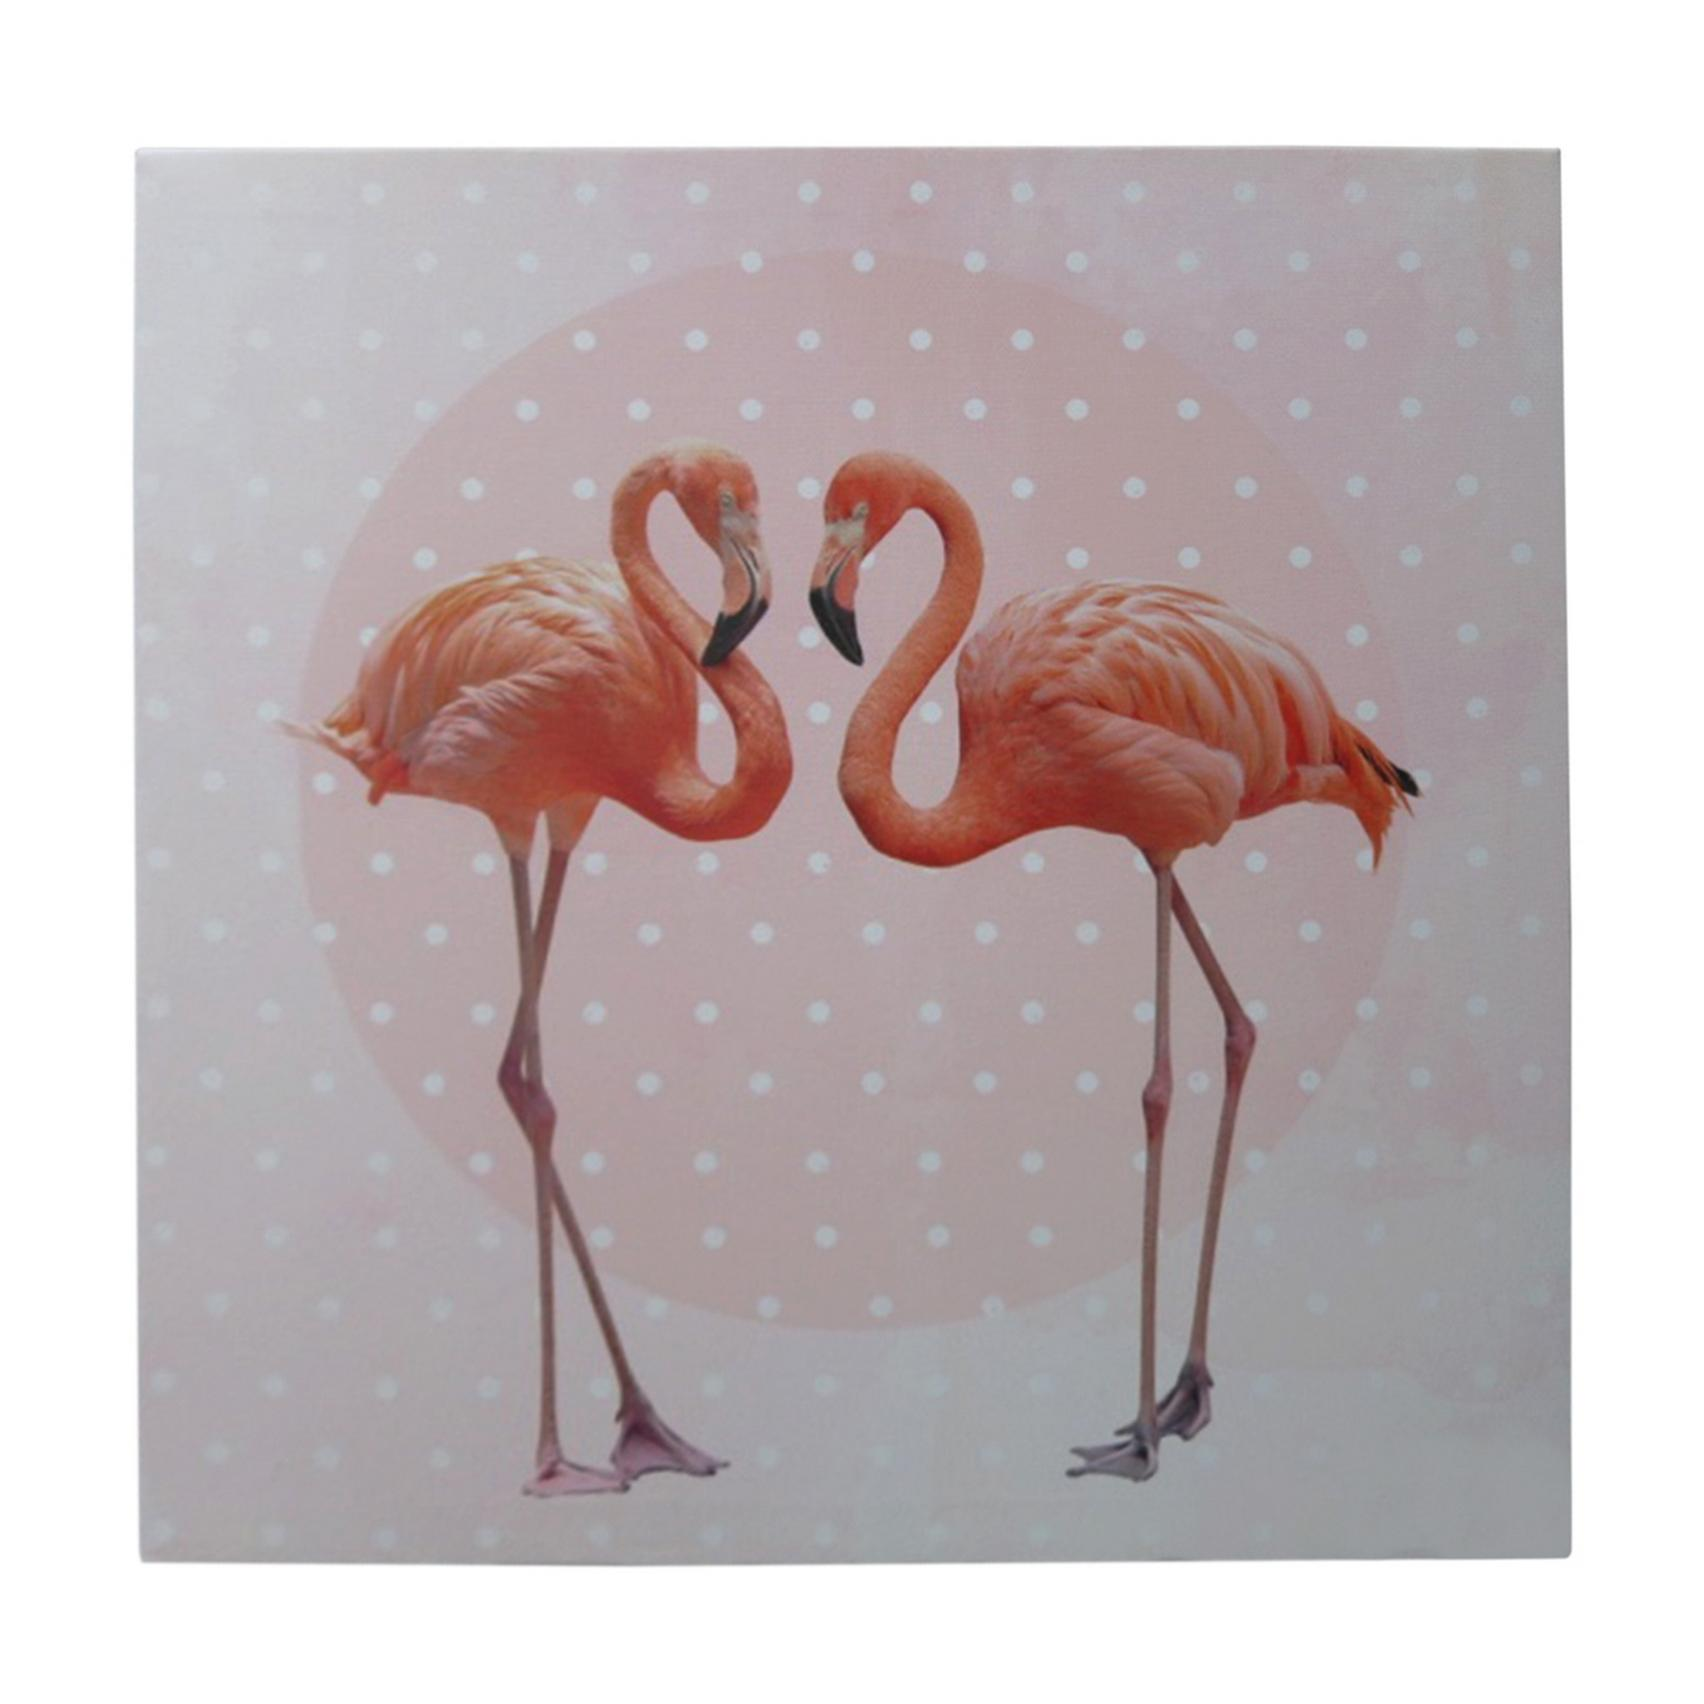 Tela Loved Flamingos Rosa 40 X 1,5 X 40 Cm - Urban